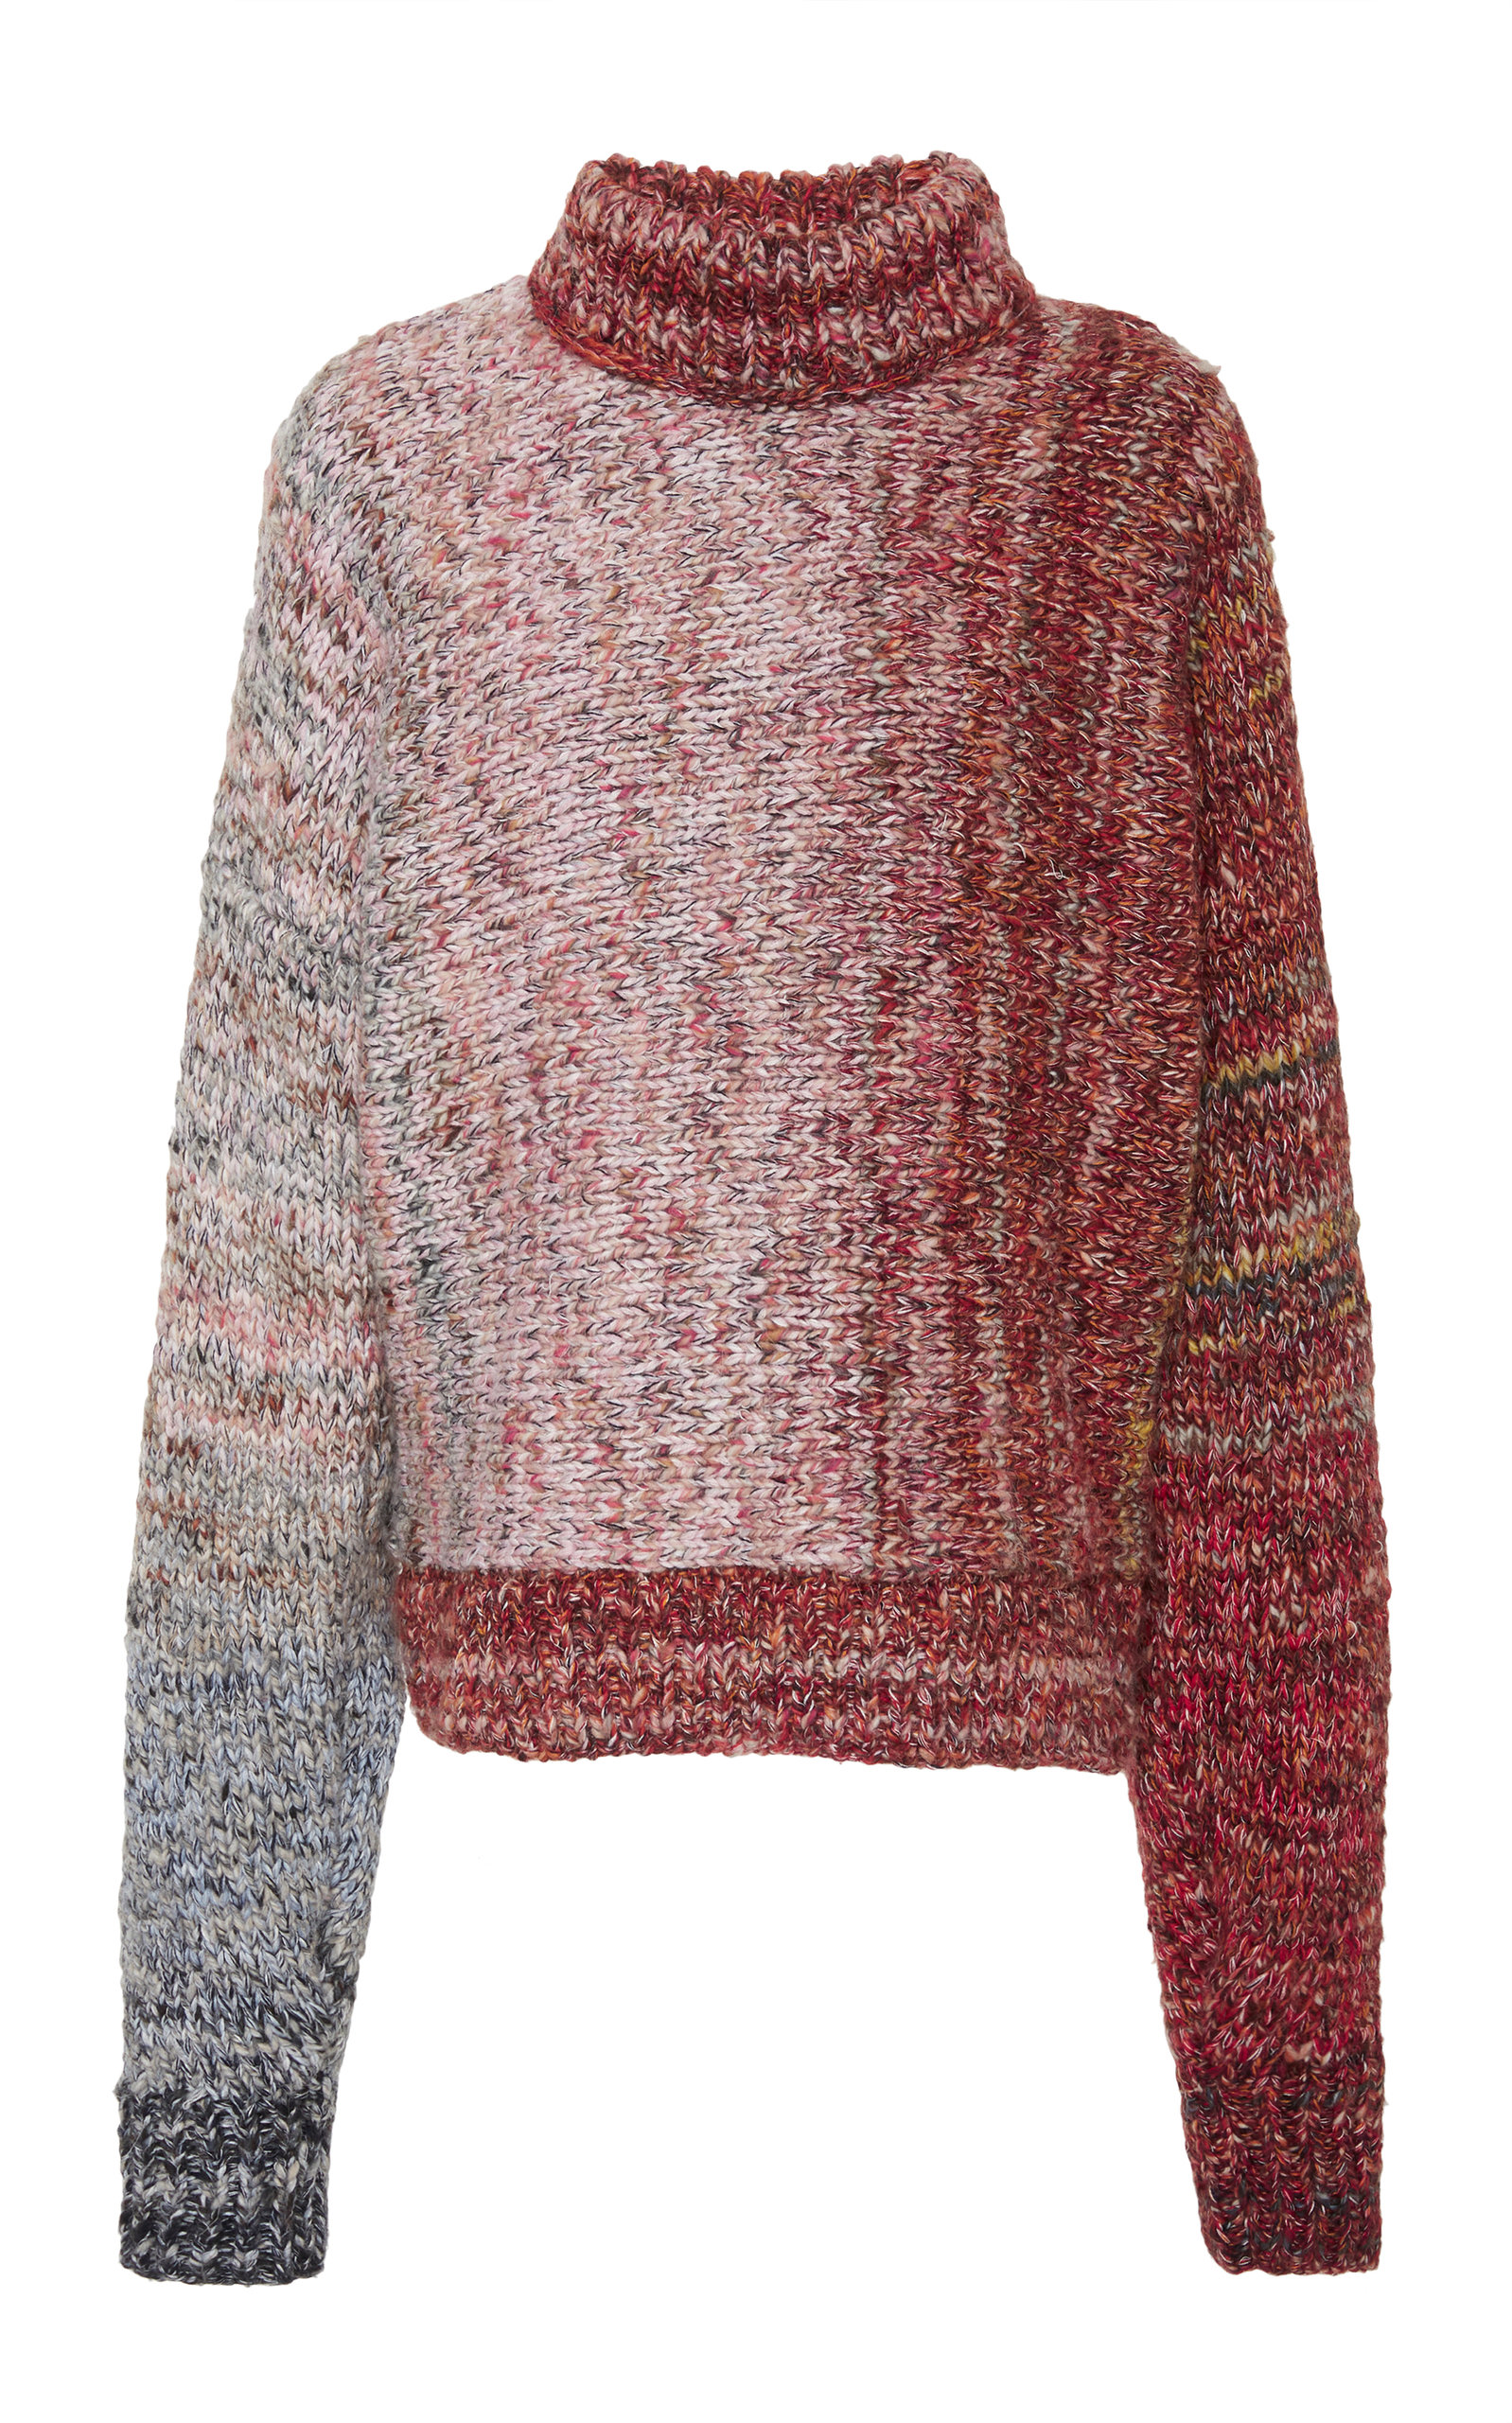 VICTORIA BECKHAM Ombré Wool-Blend Turtleneck Sweater - Multi Ombre Size 1 in Red